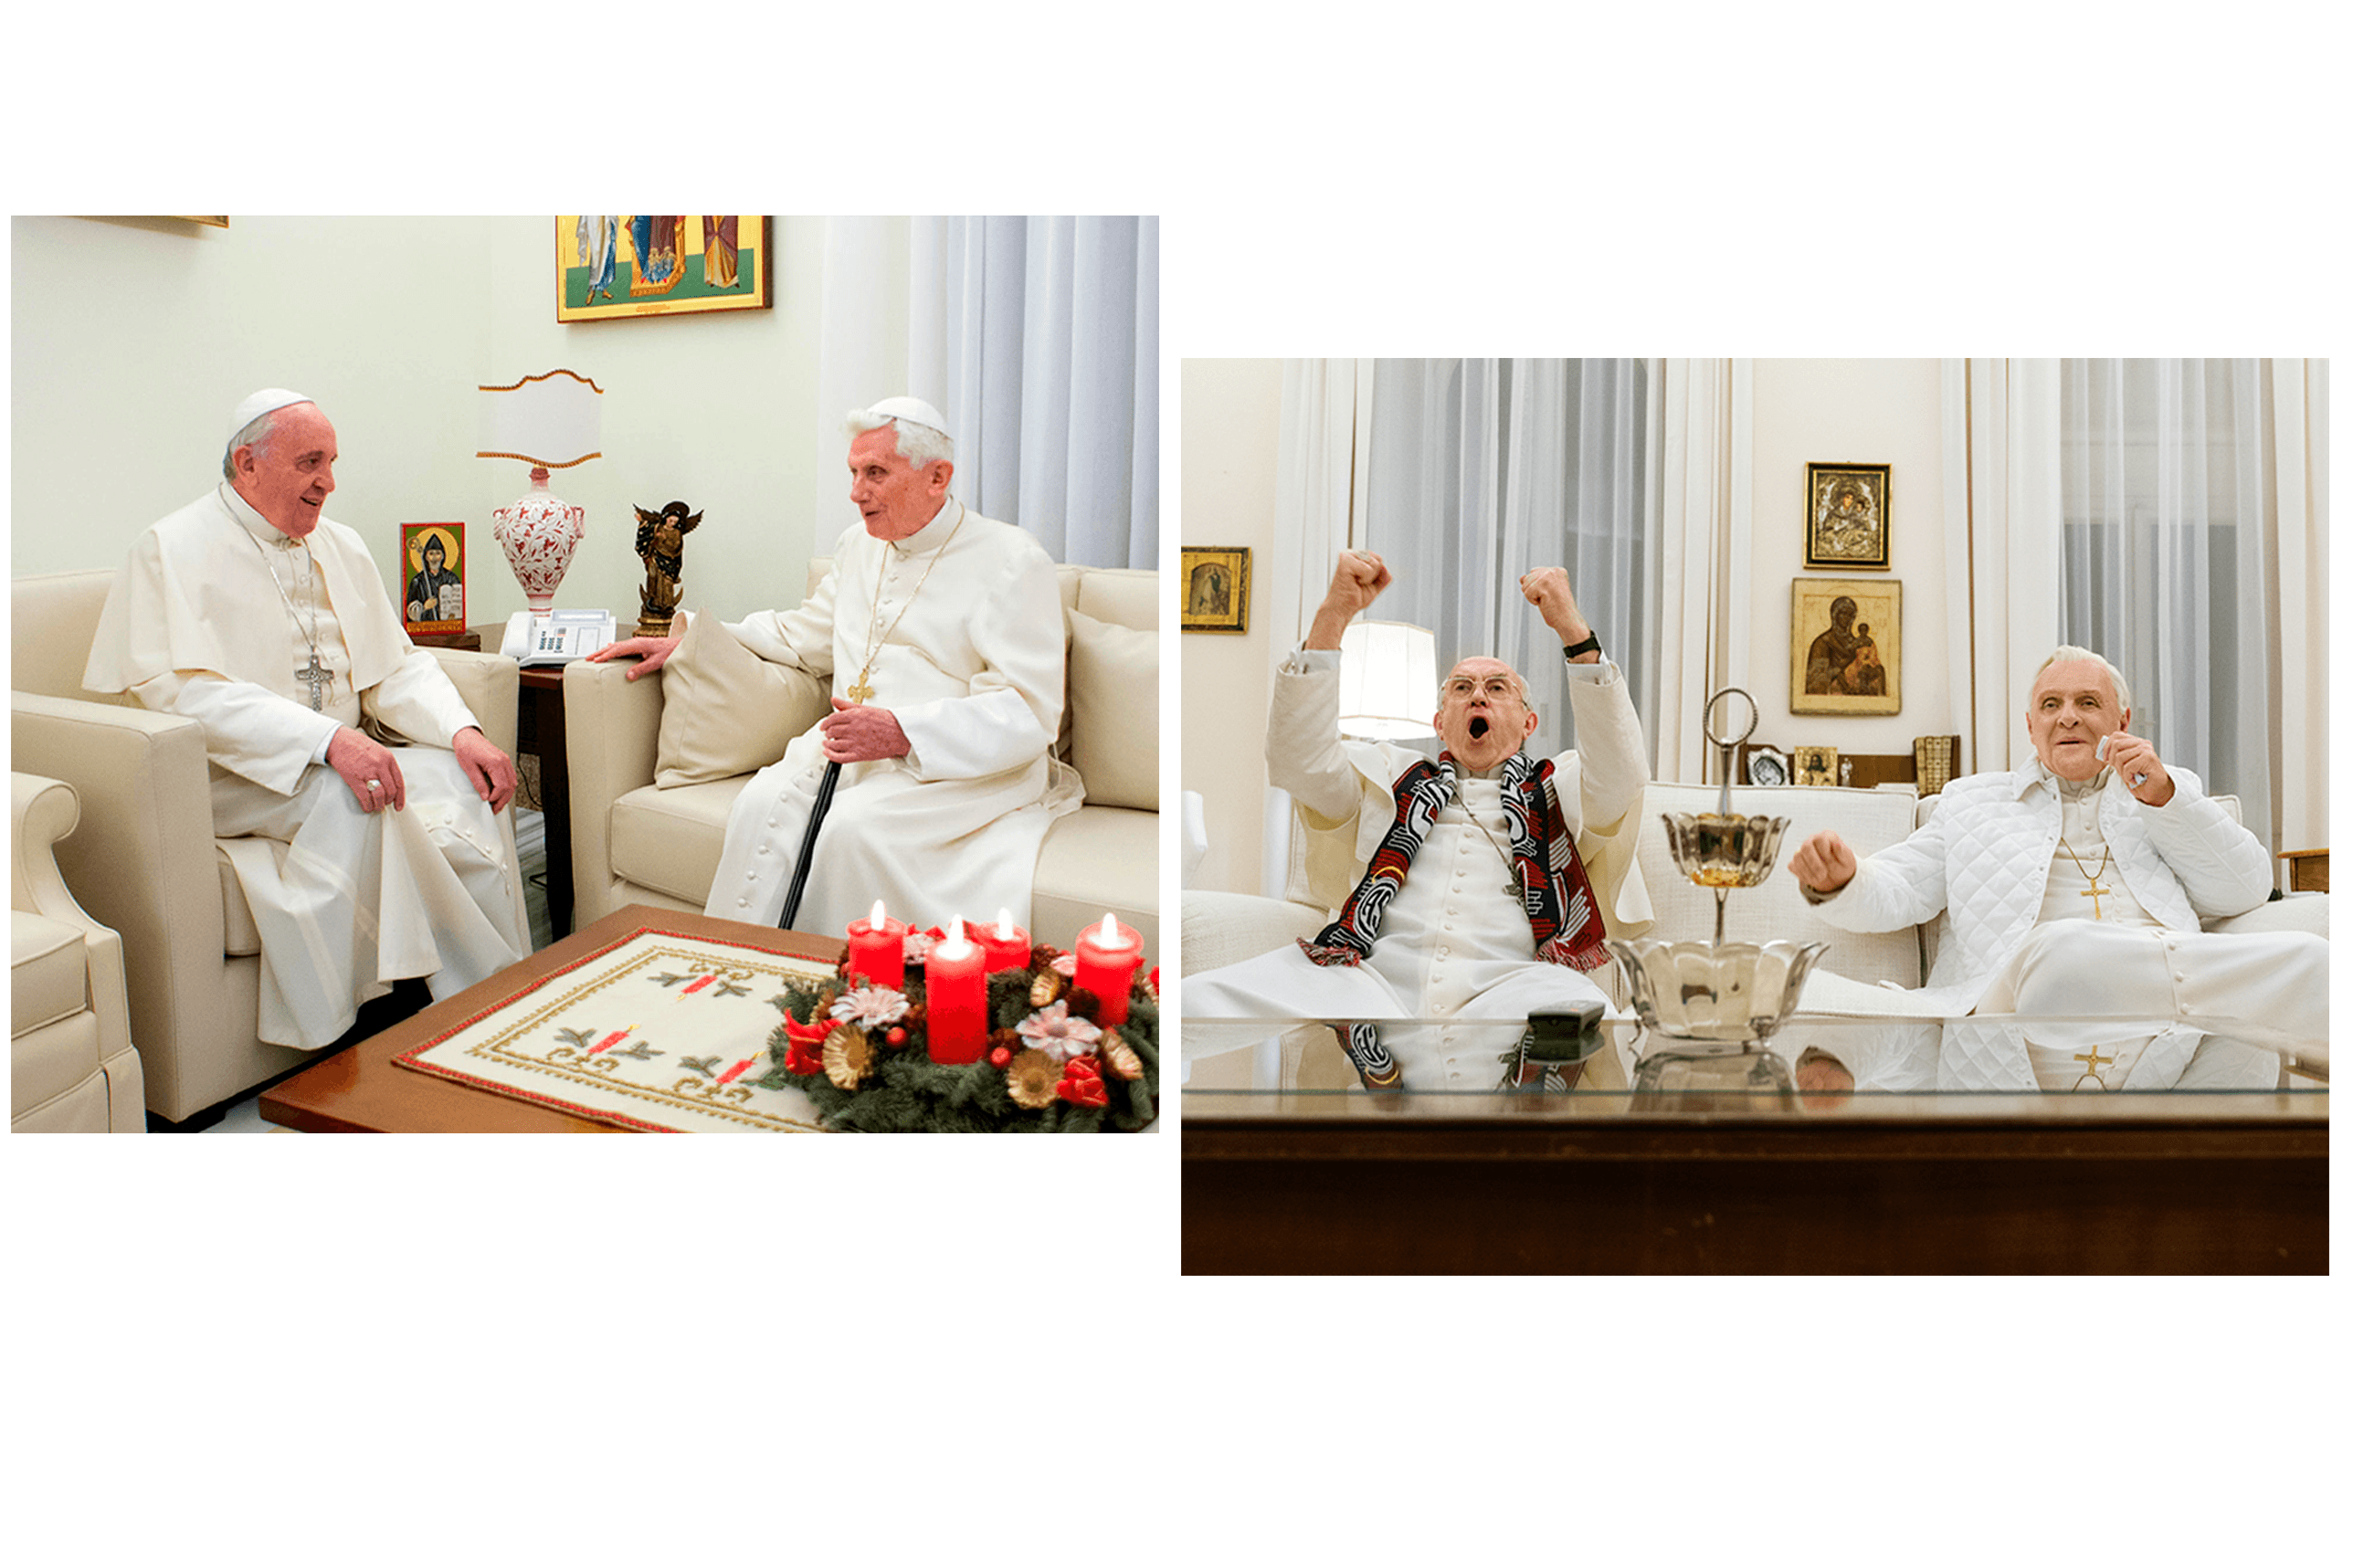 The Two Popes: What Actually Happened When Francis Met